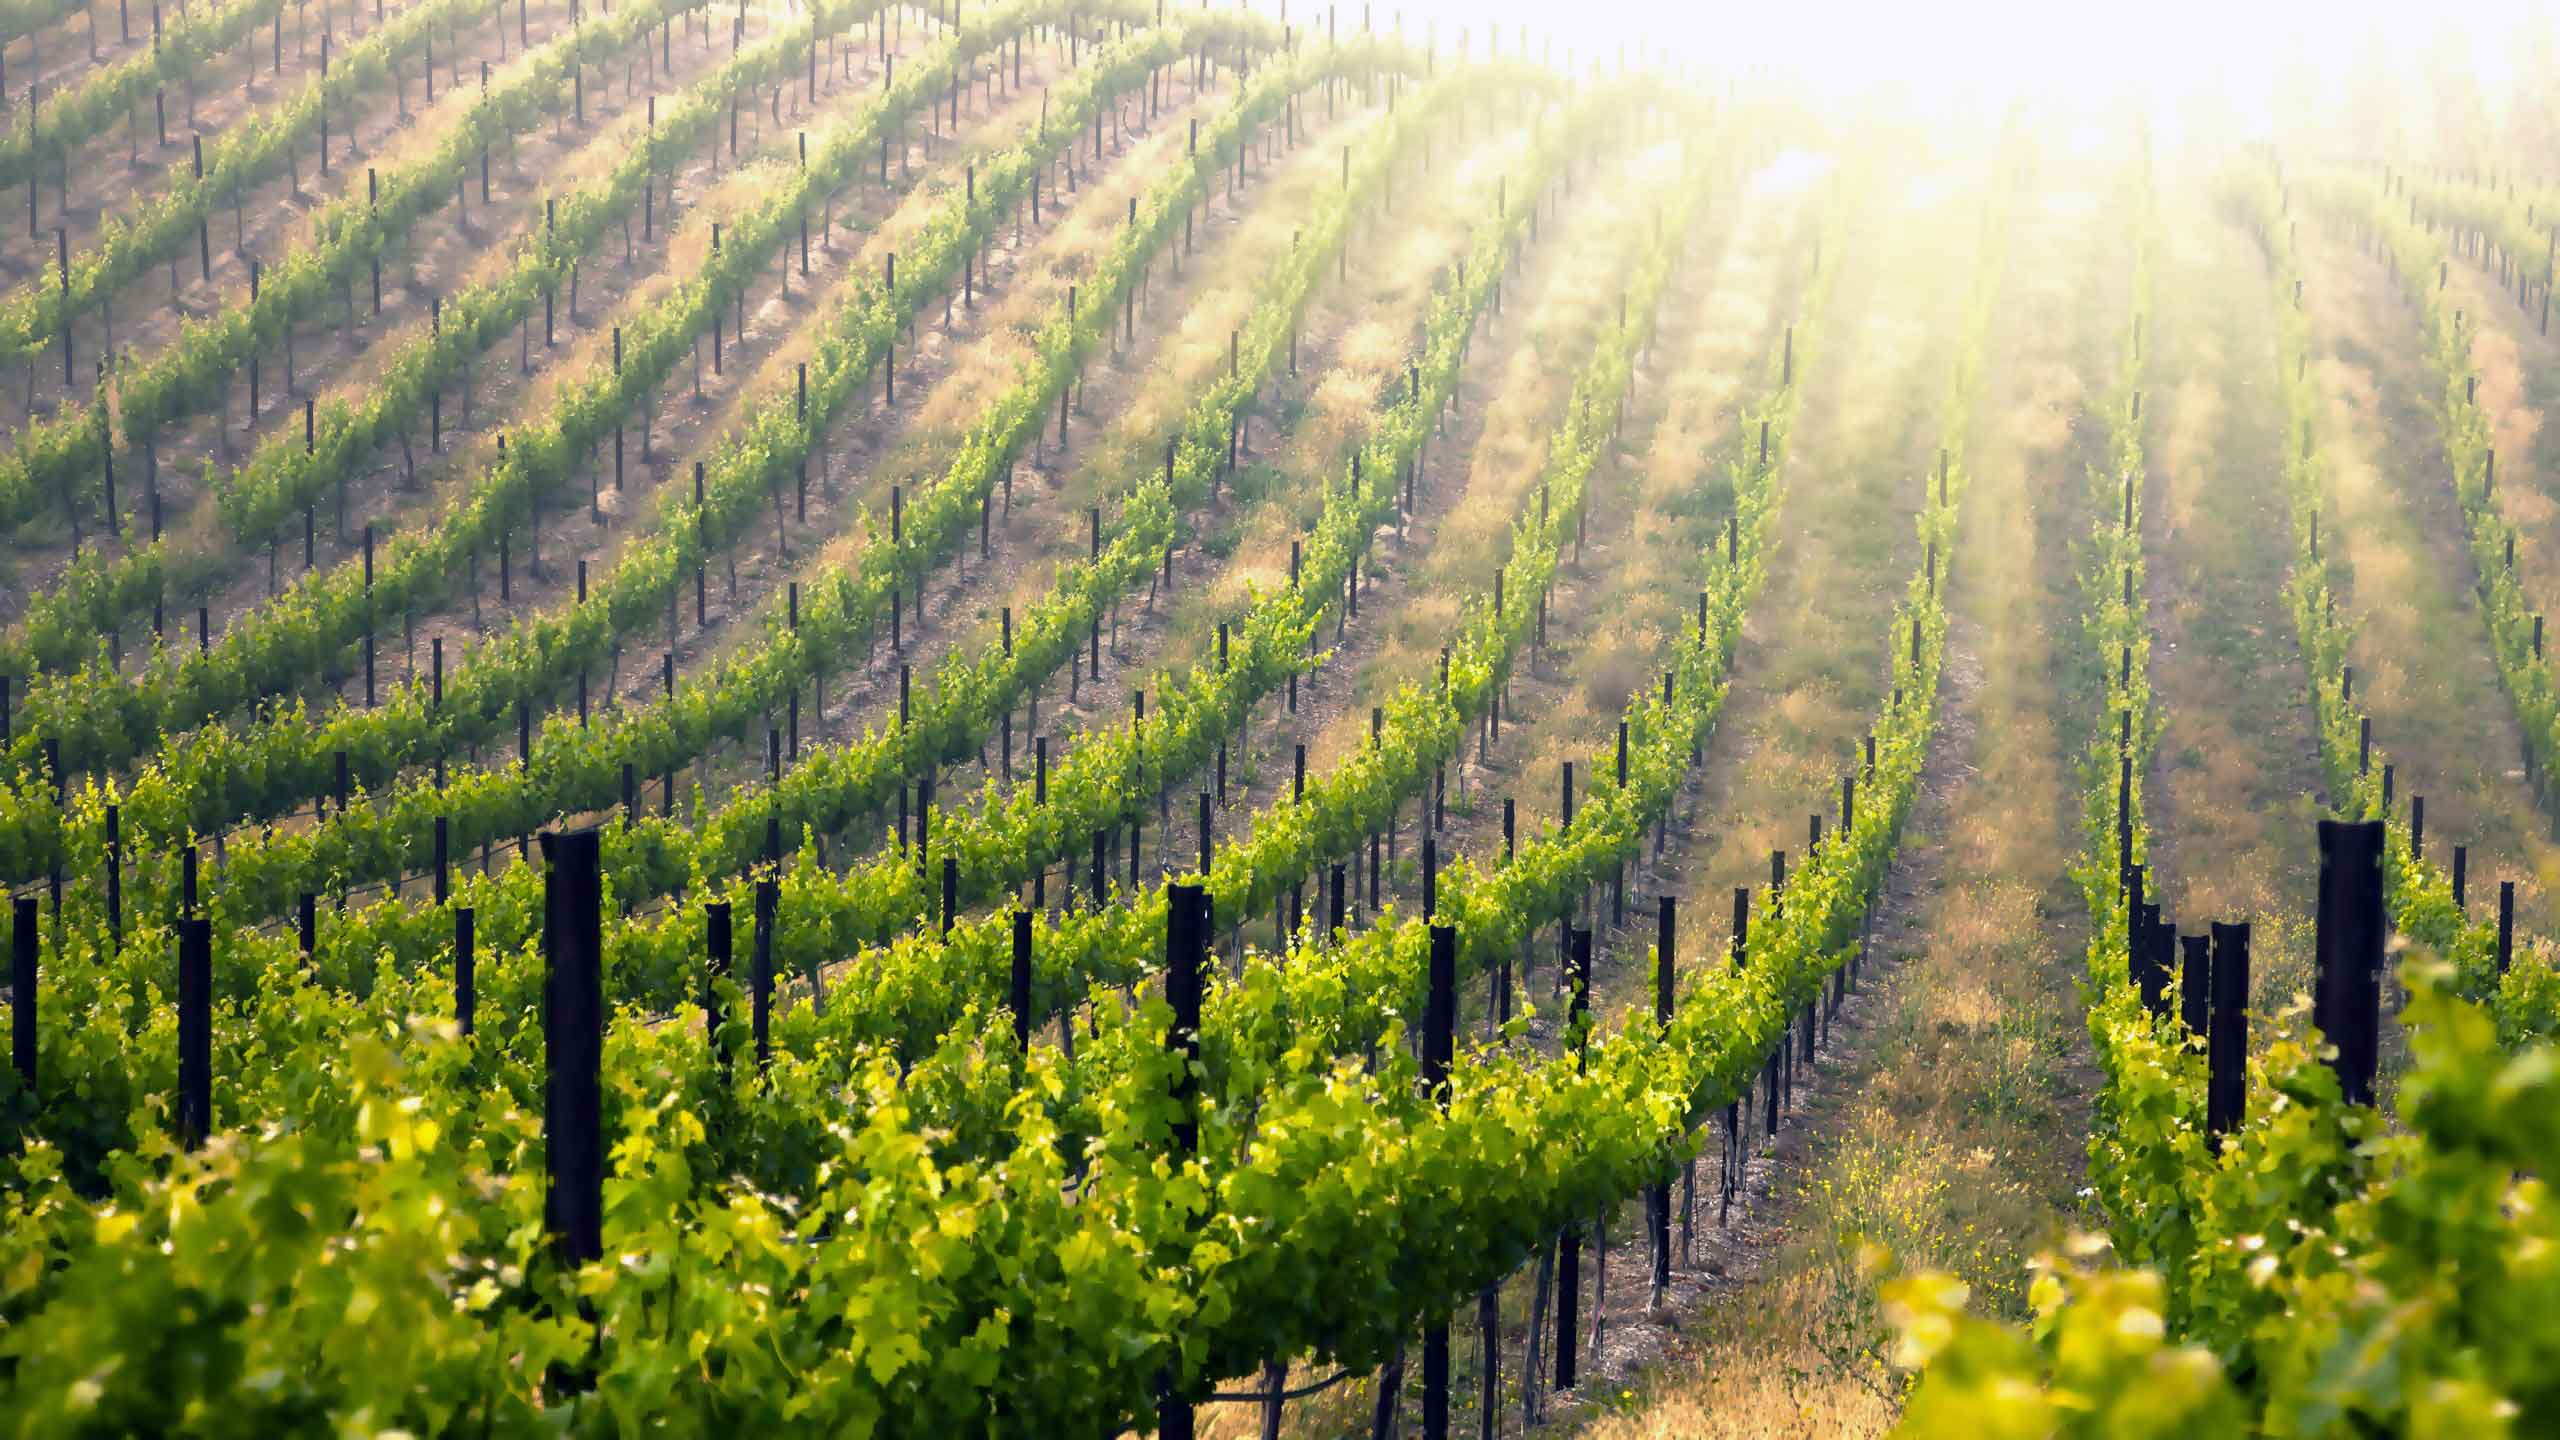 Willamette Valley Vineyard Tours by Limo